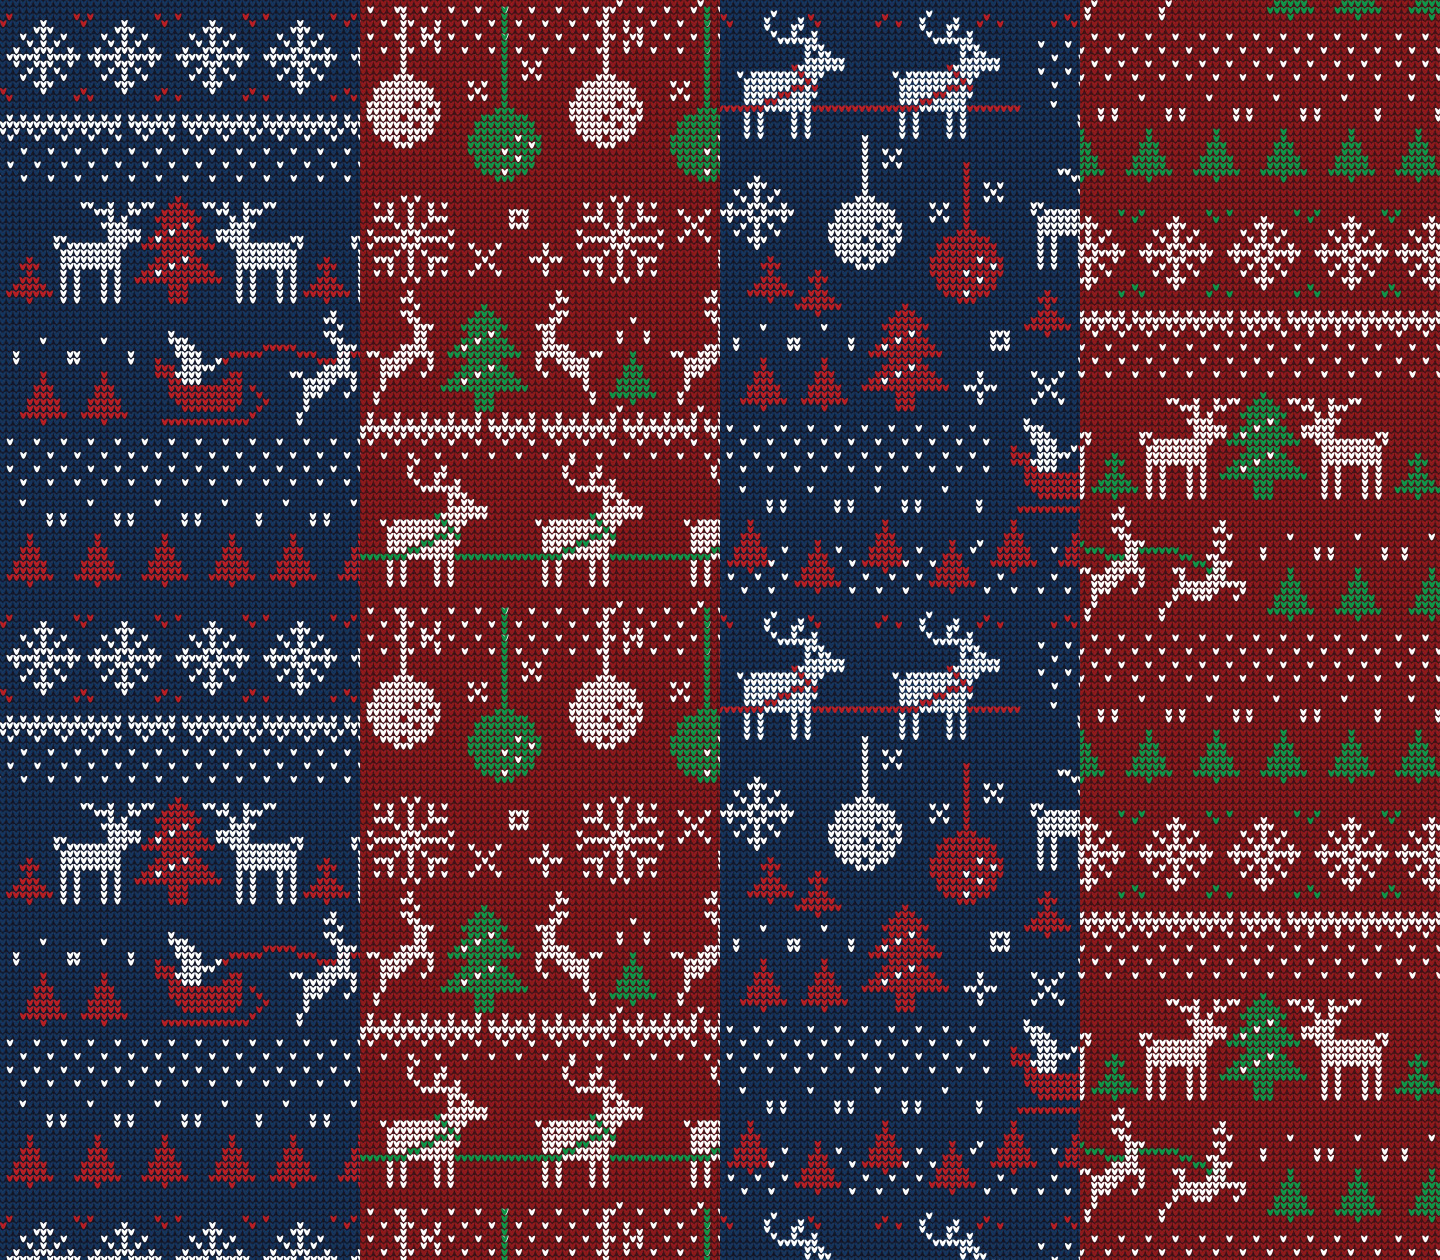 Free Ugly Christmas Jumper Patterns